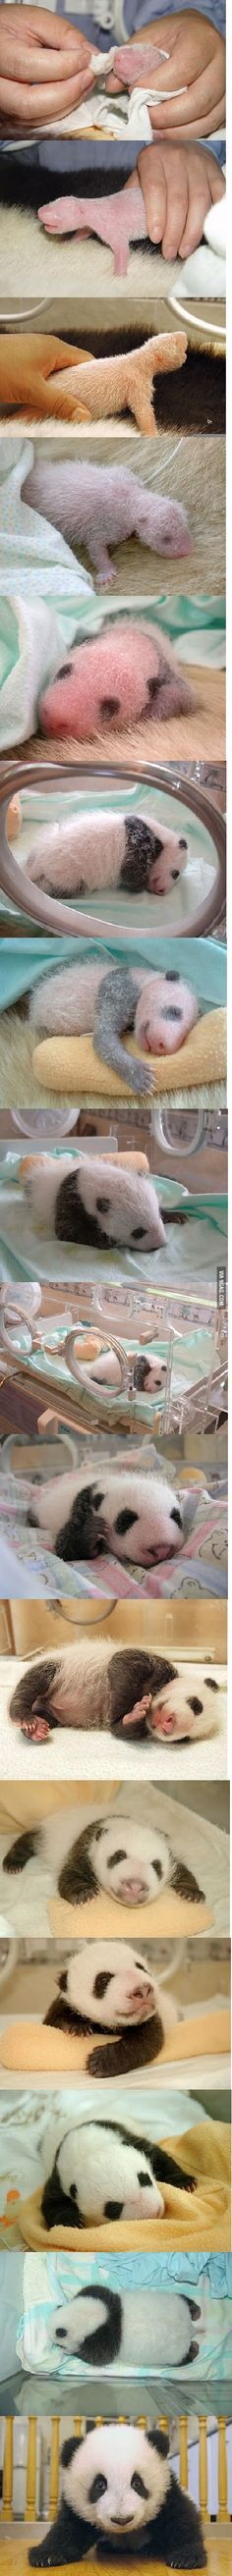 So you like pandas...timeline of a newborn...